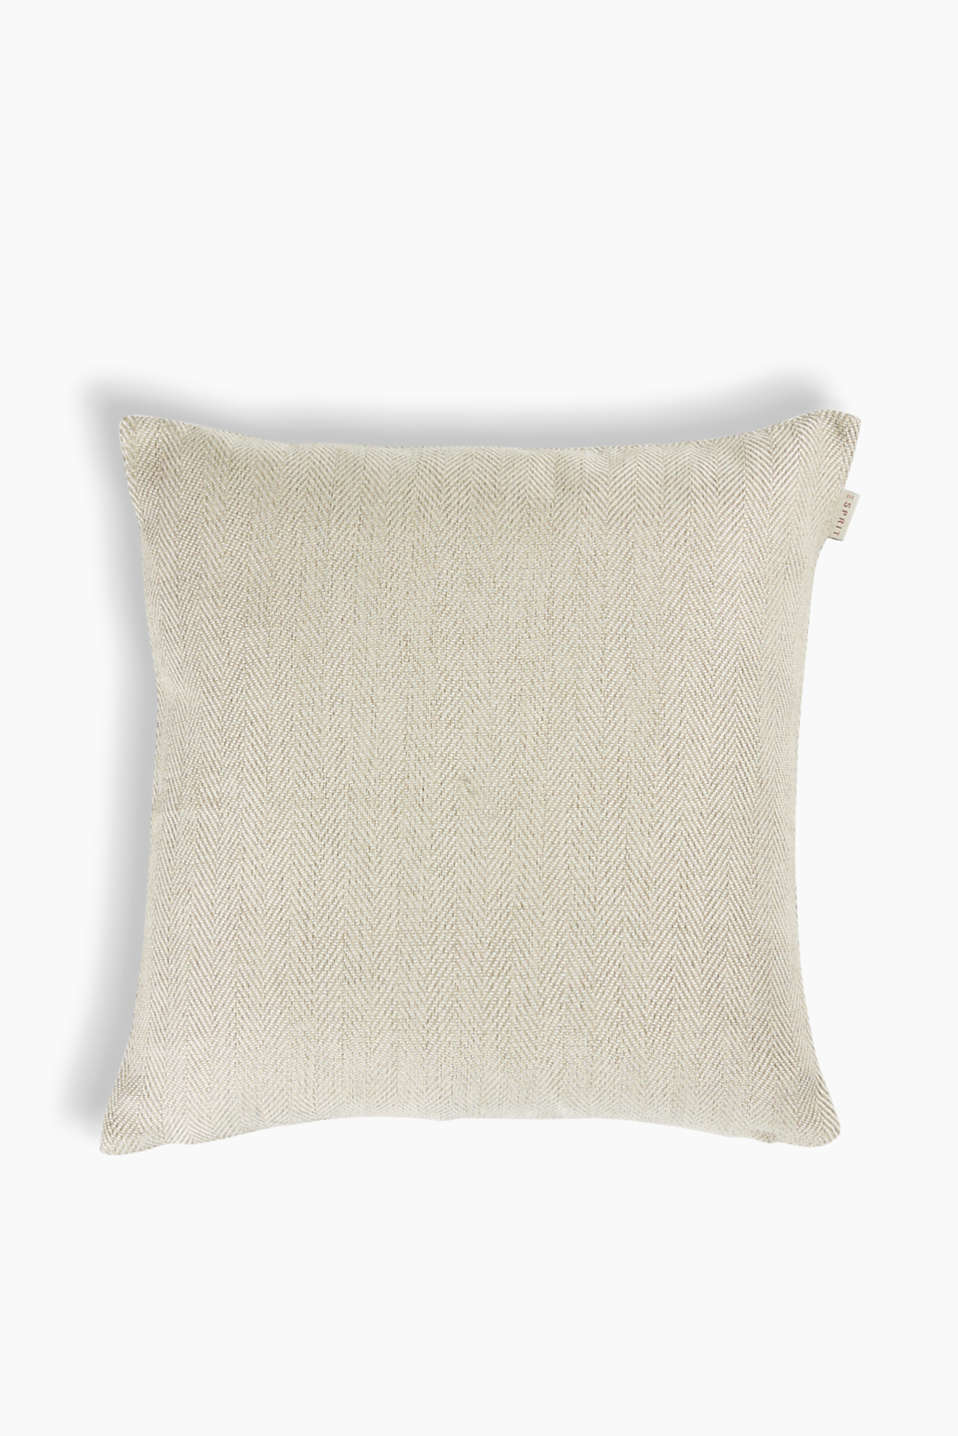 Cushion cover in textured fabric with a melange, herringbone pattern